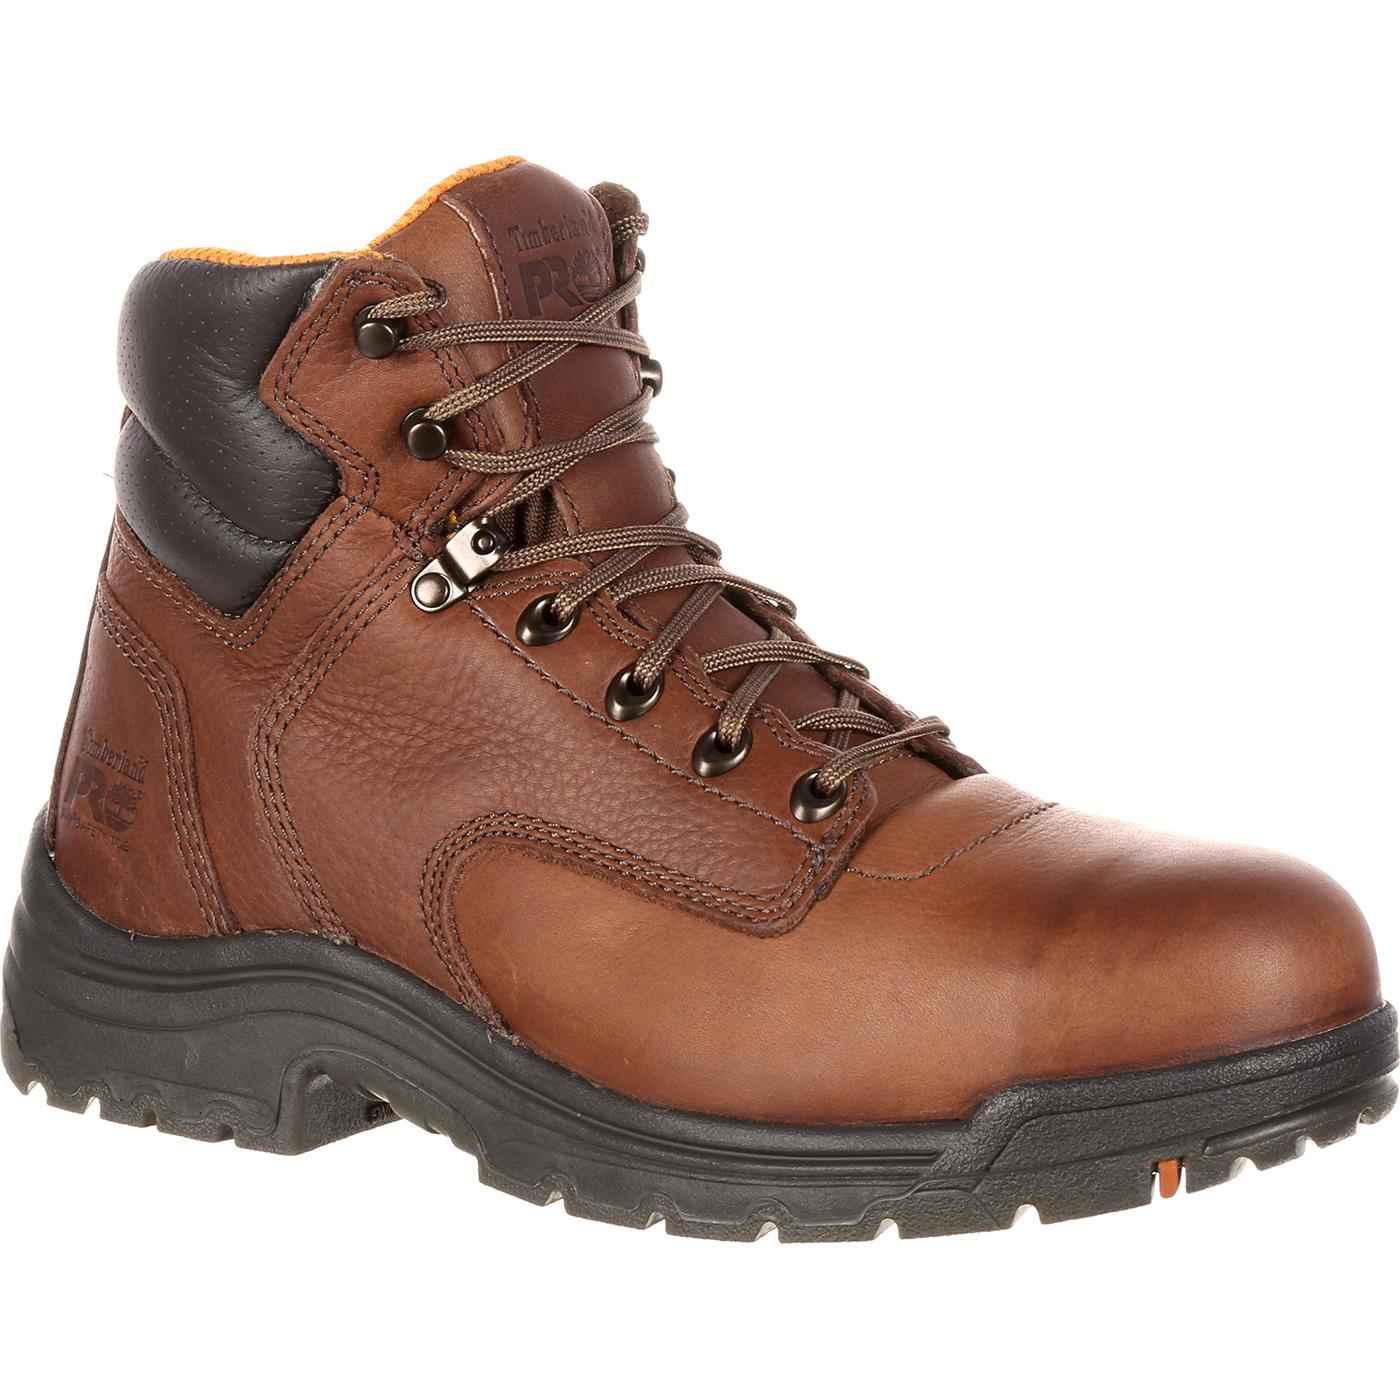 Lightweight Titan Alloy Protective Toe Sport Work Boot